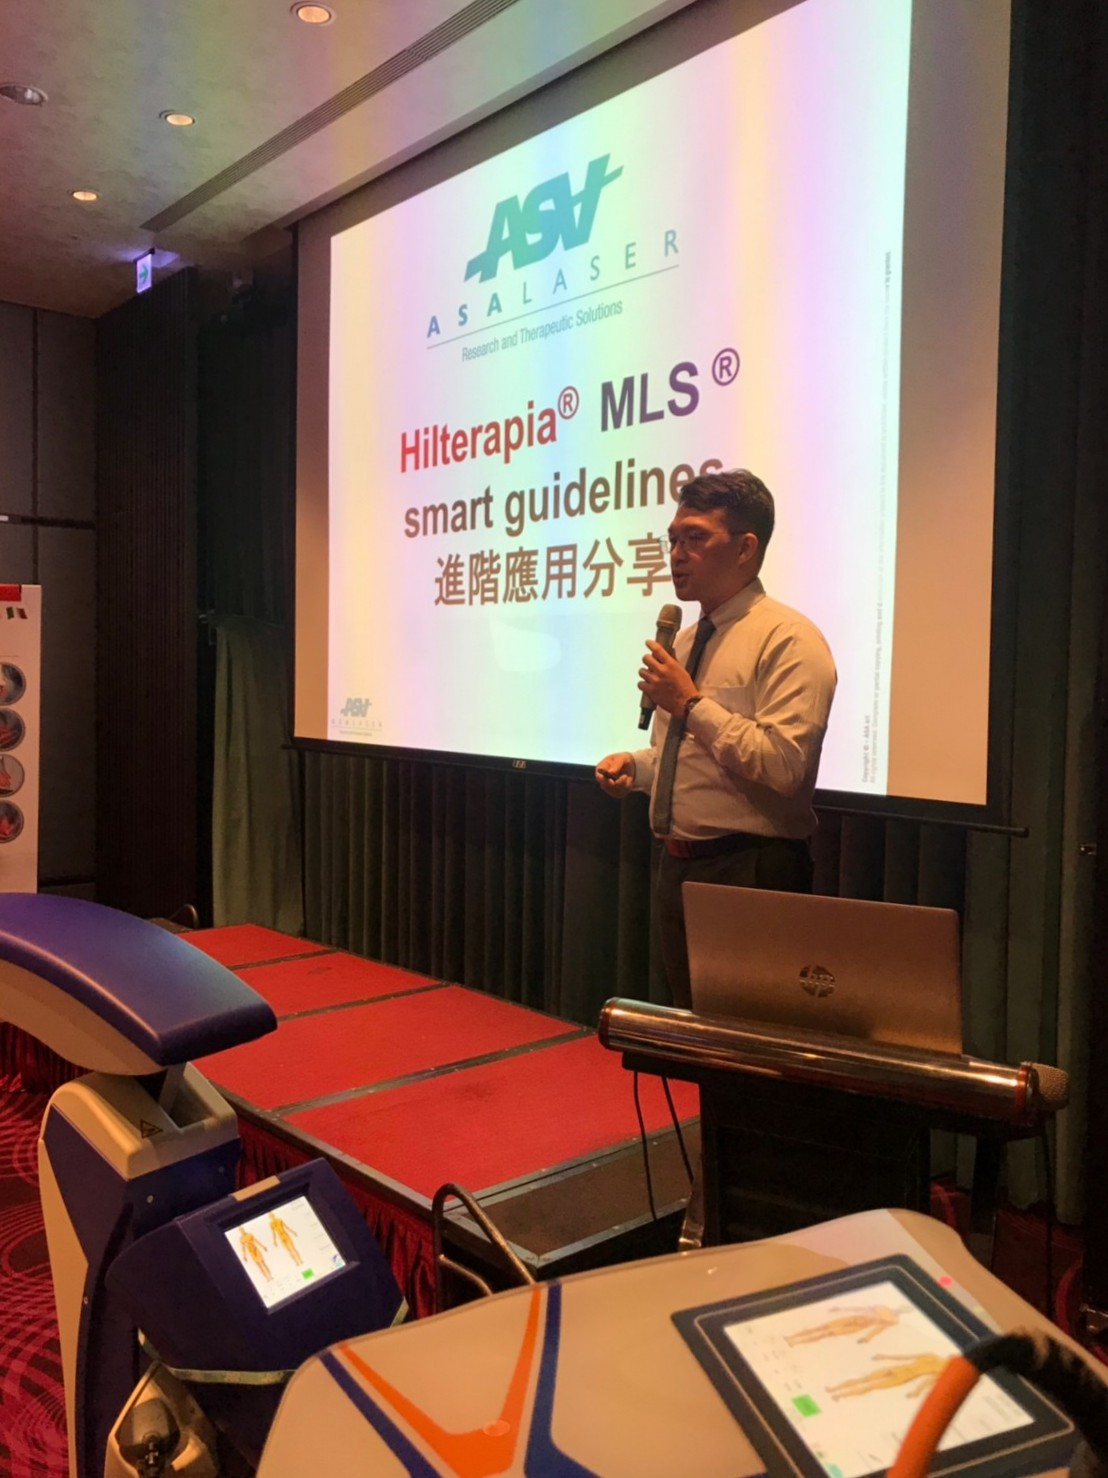 Taiwan - Workshop on MLS and Hilterapia, August 2020